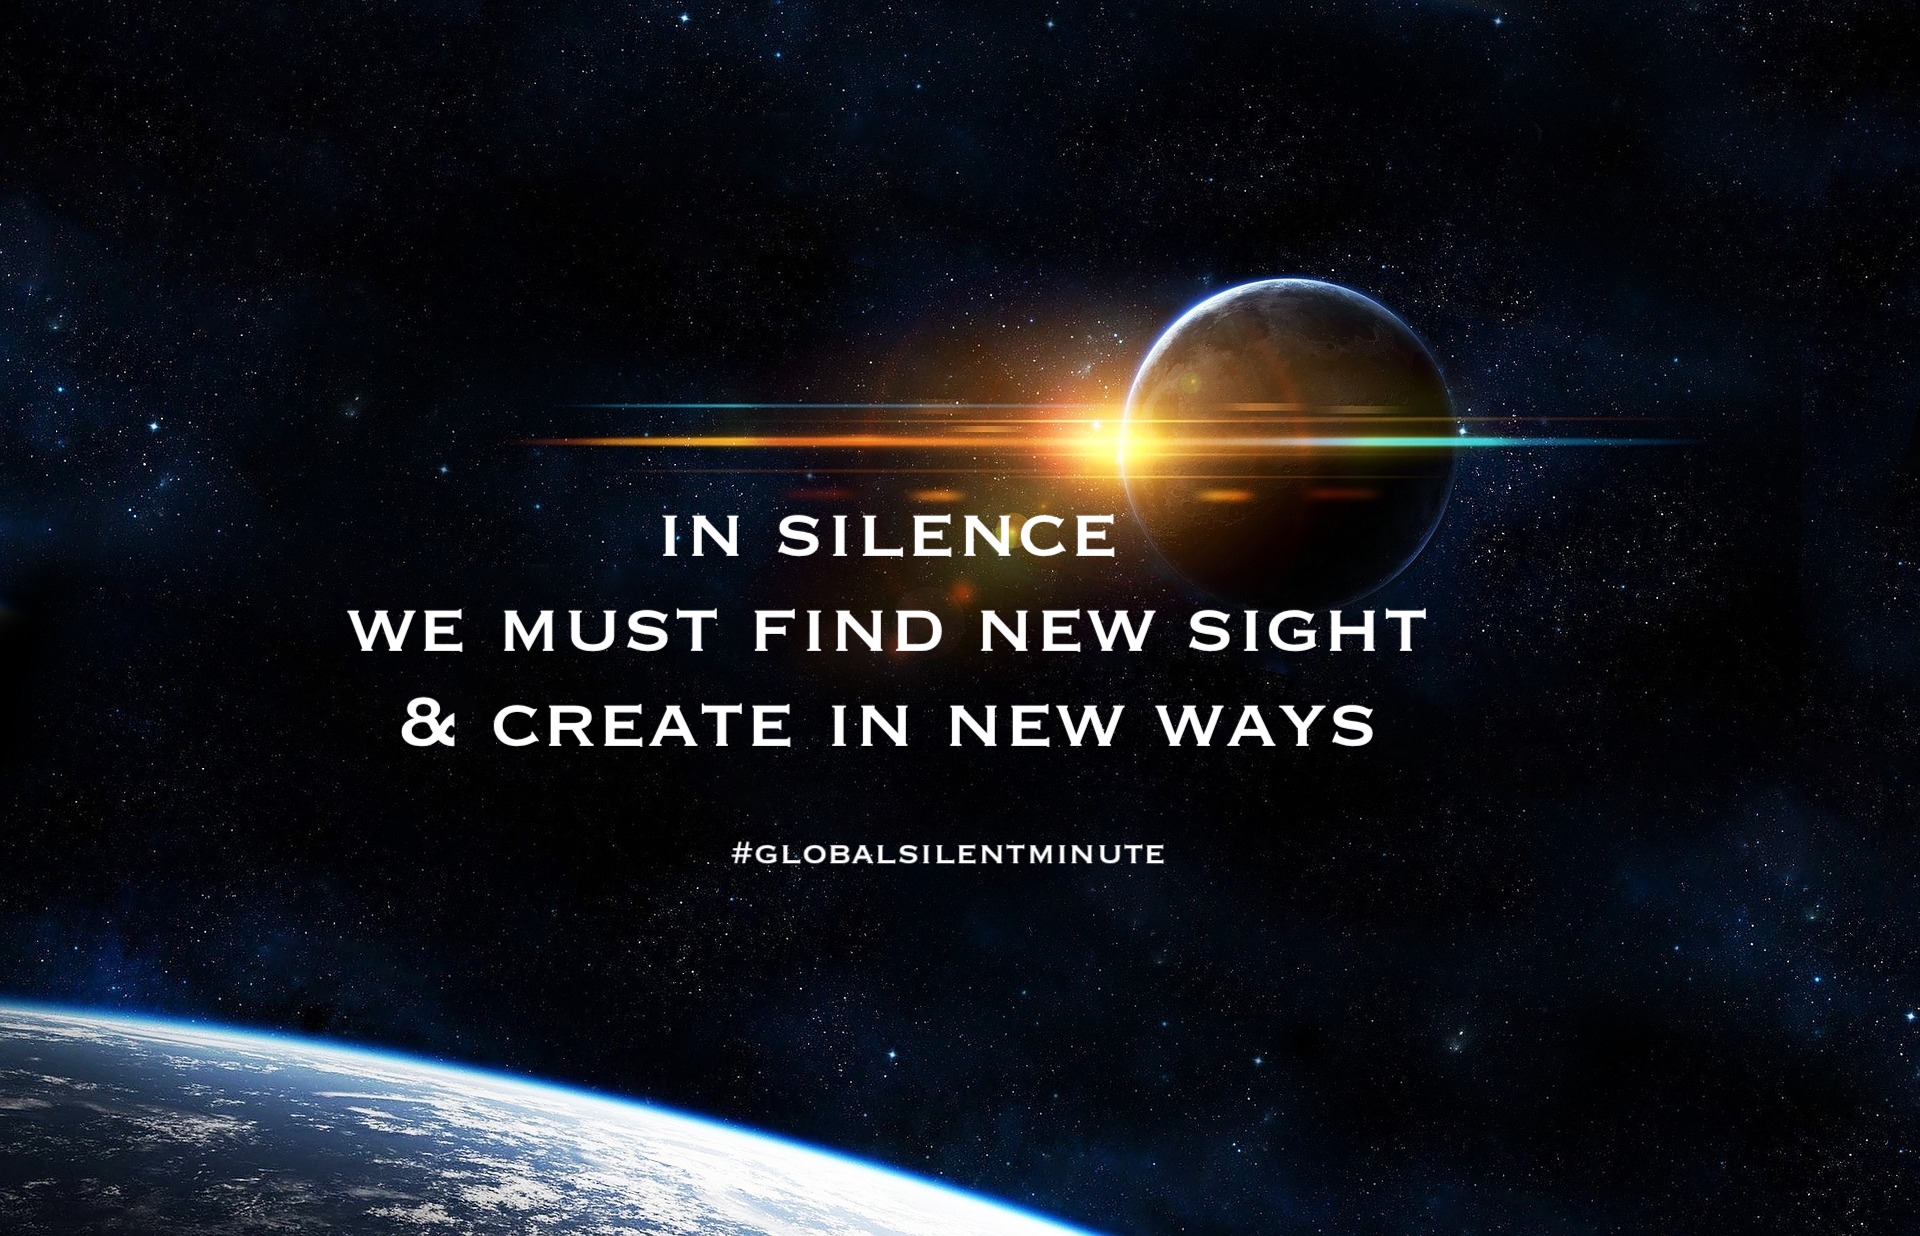 22. In Silence we must find new sight and creeate in new ways